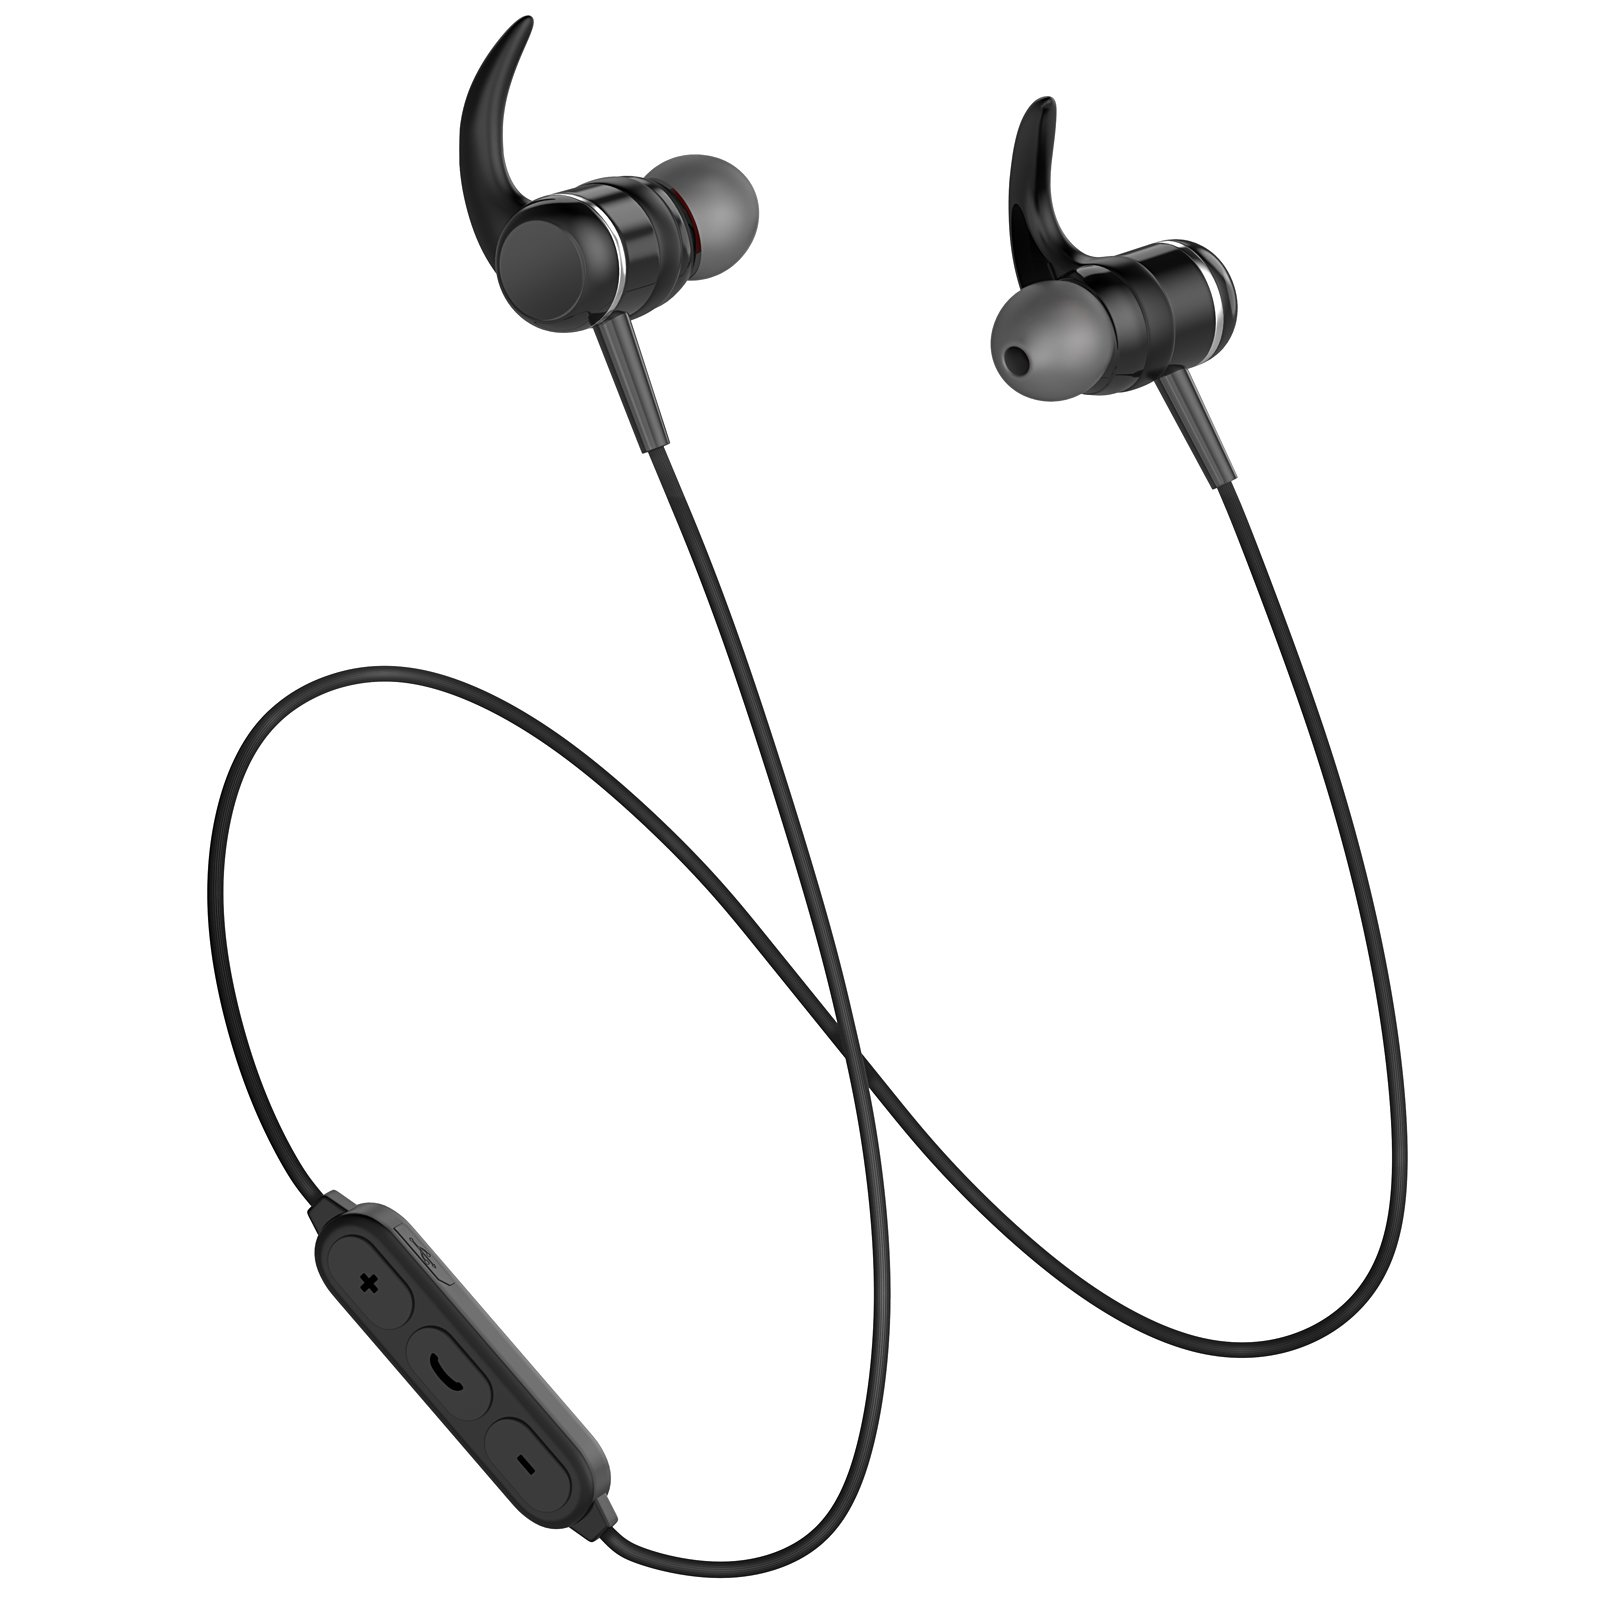 Bluetooth 4.1 Headphones, Earbuds with HD Mic, Sweat-Proof in Ear Earphones for Running Gym Workout by LIREION (Image #1)